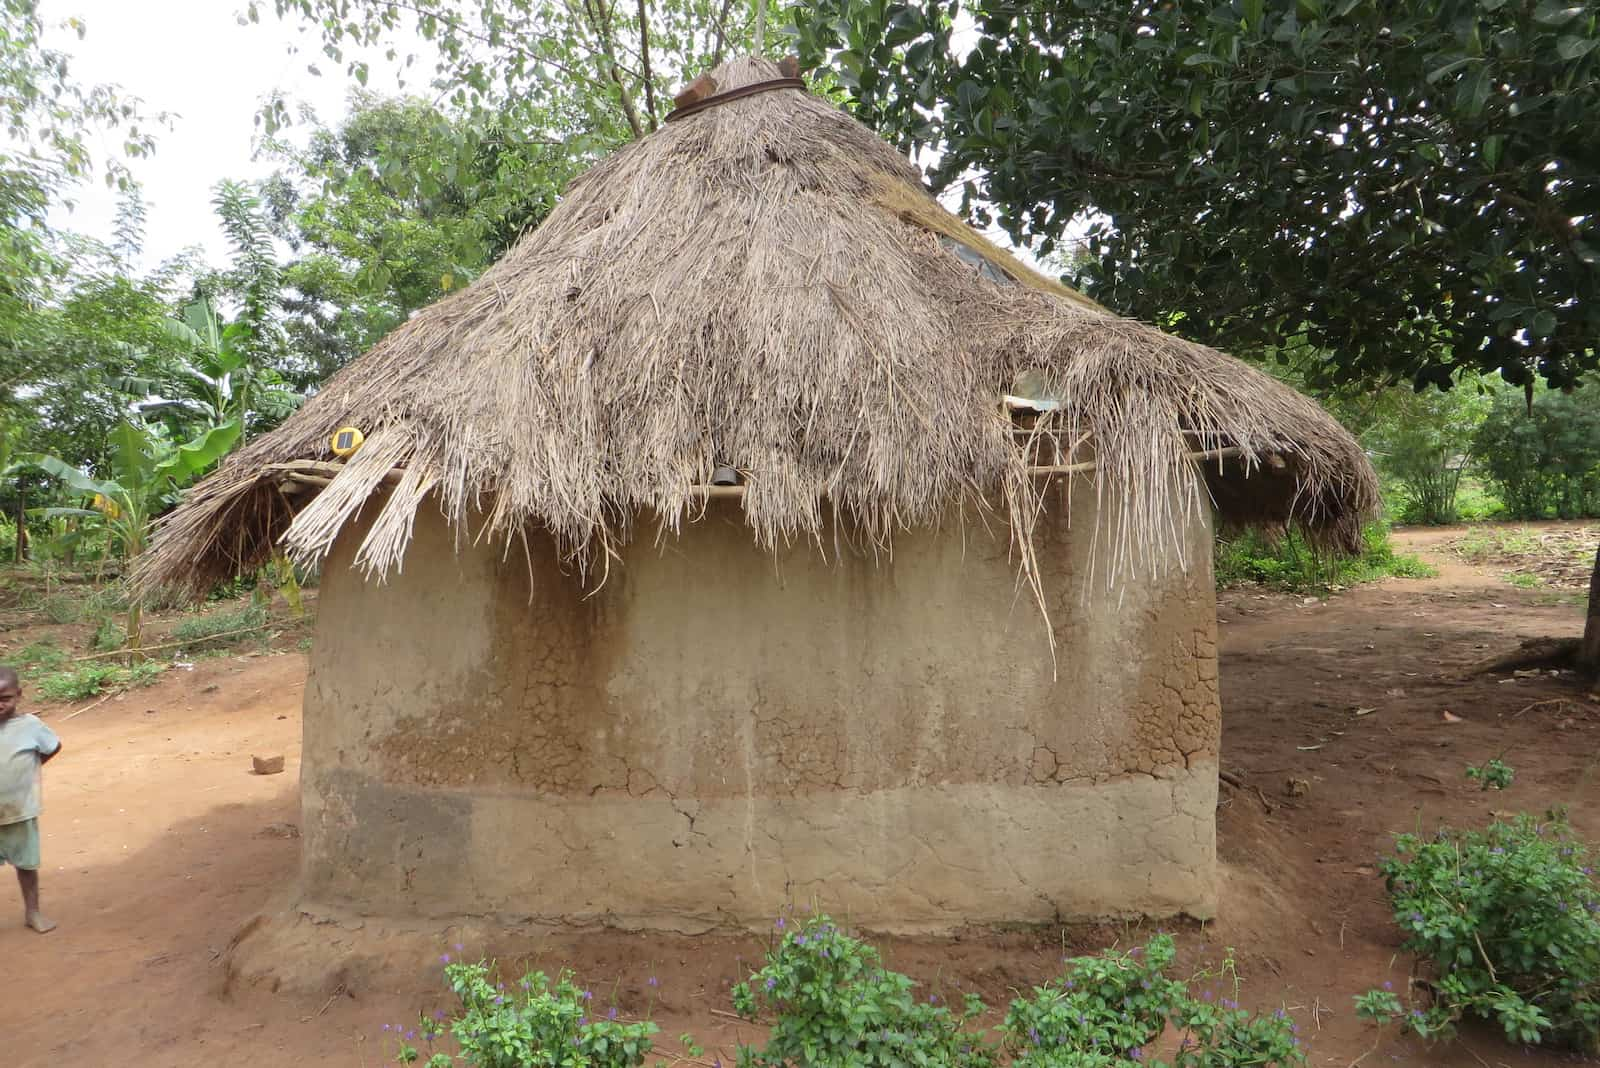 A small round mud home with a thatched roof.